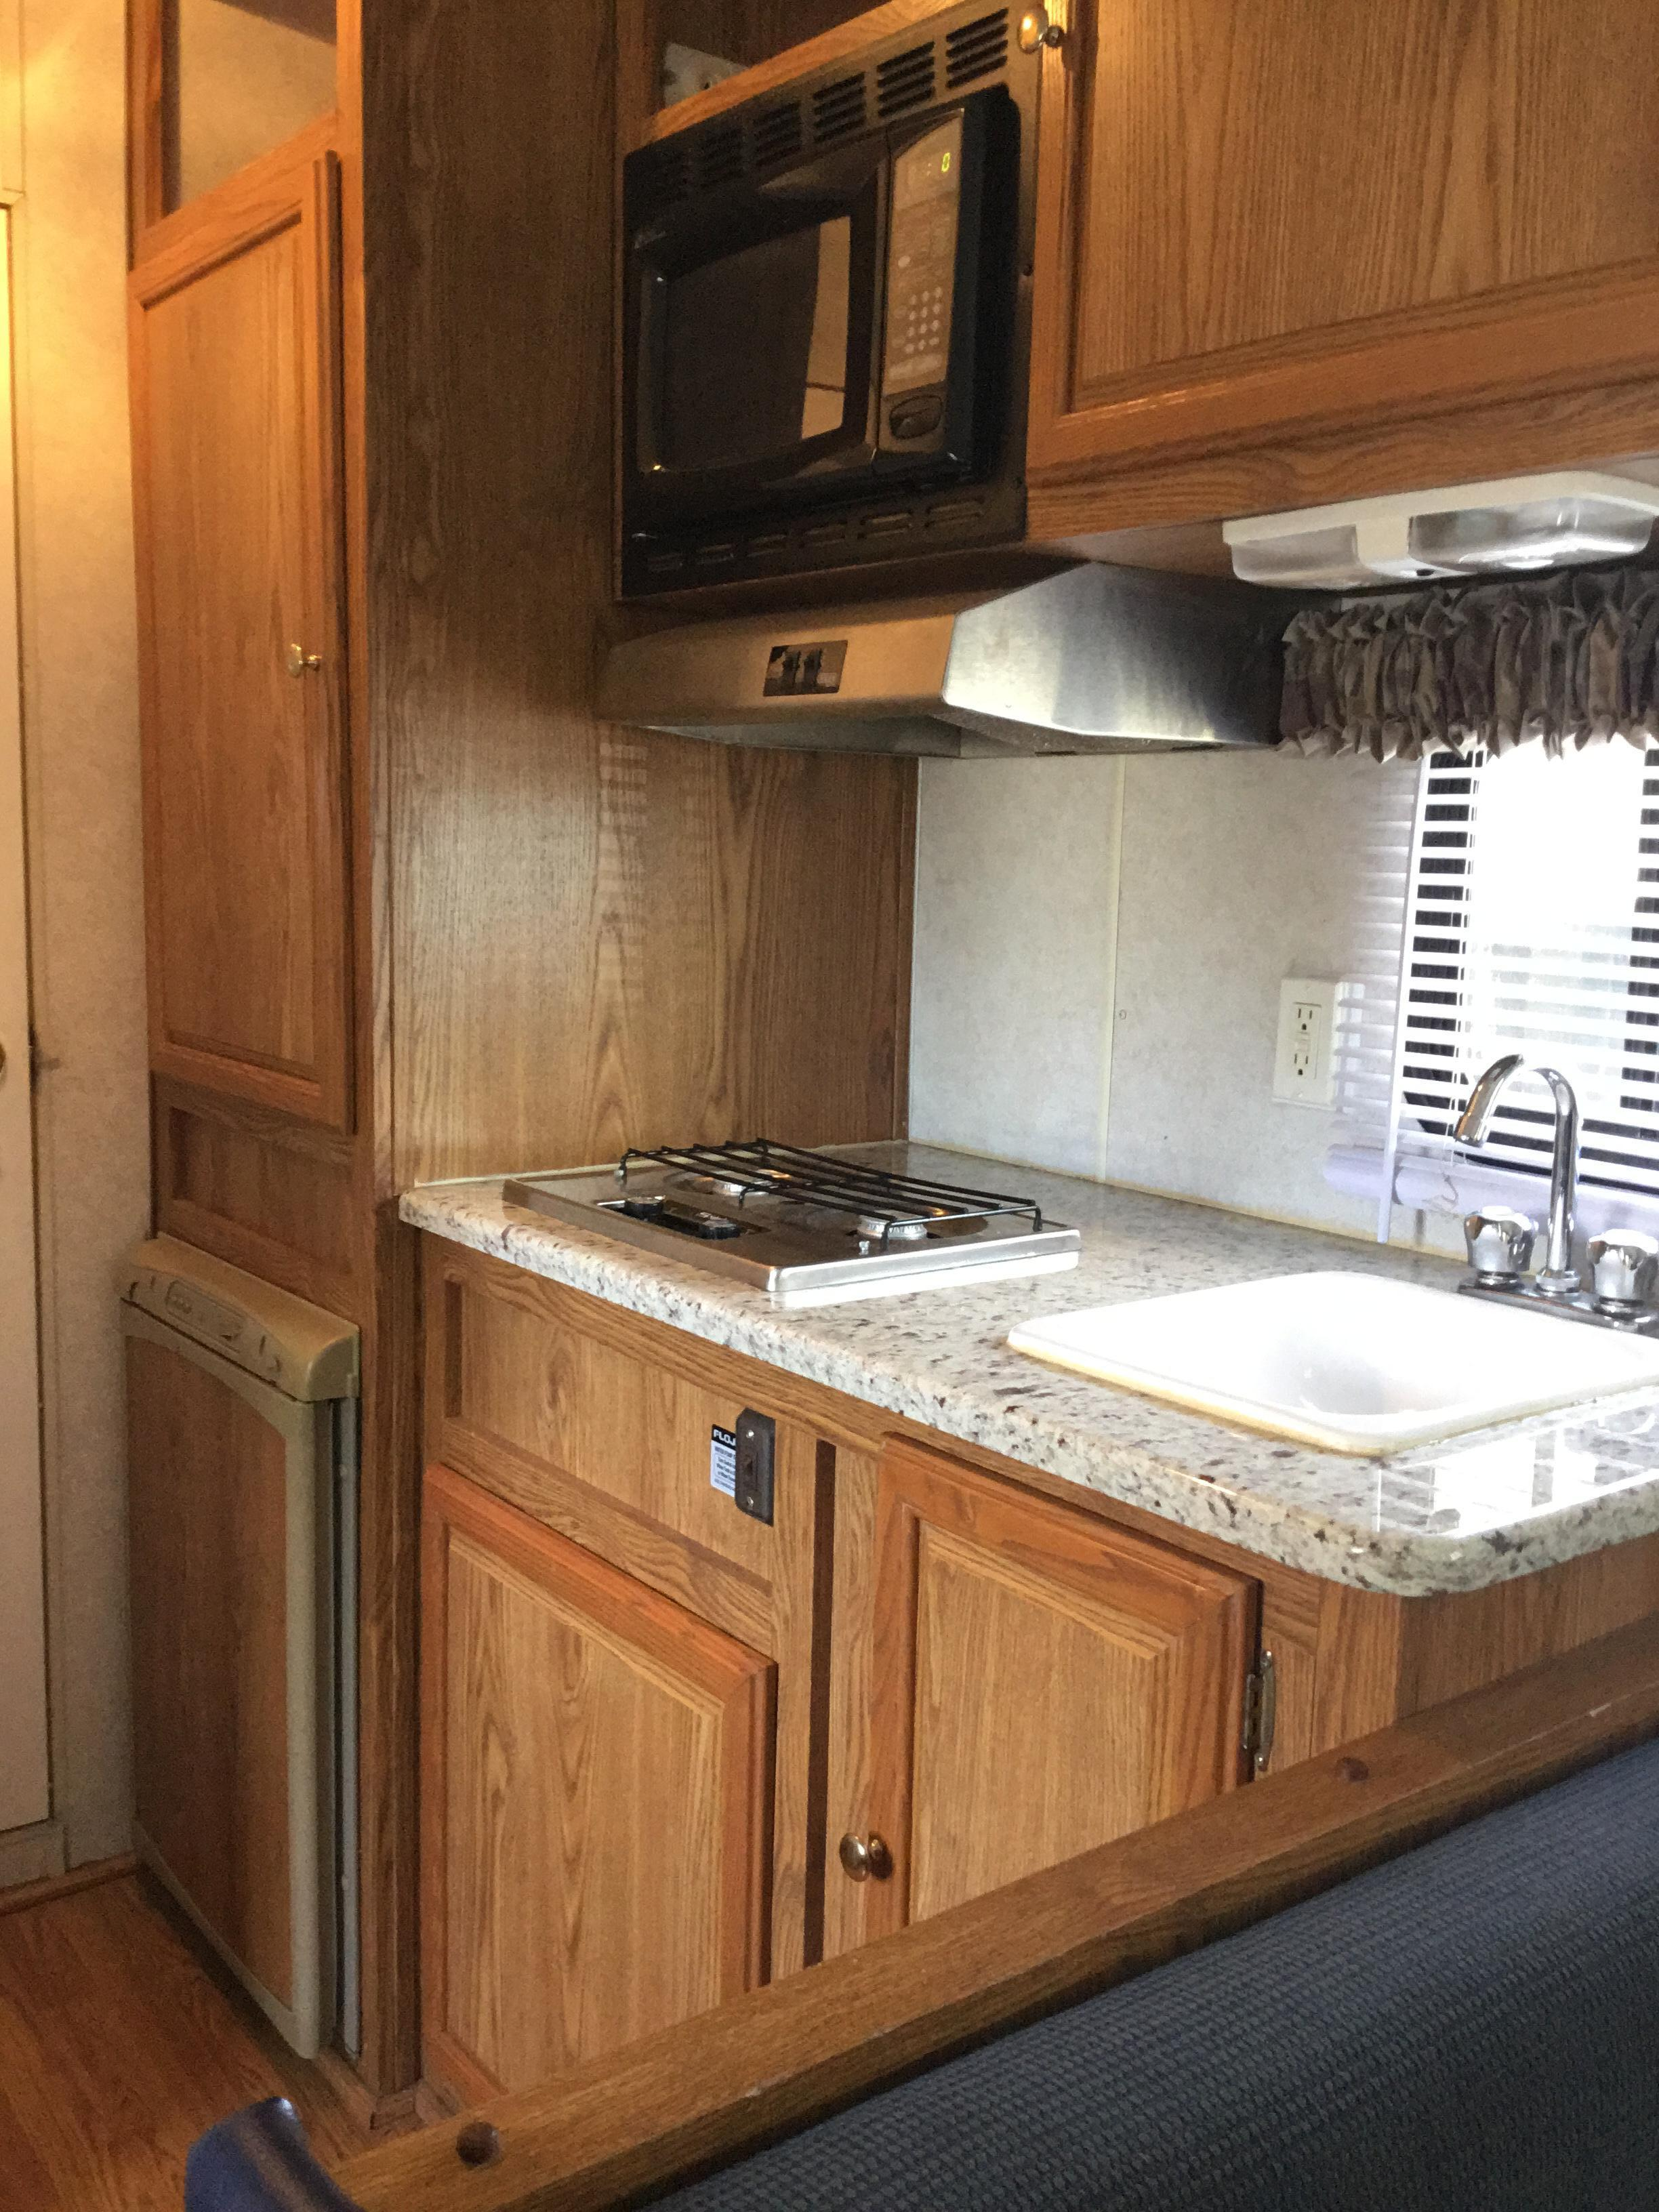 Used Kitchen Cabinets York Region 2006 Vintage Rvt For Sale In Guelph 17900